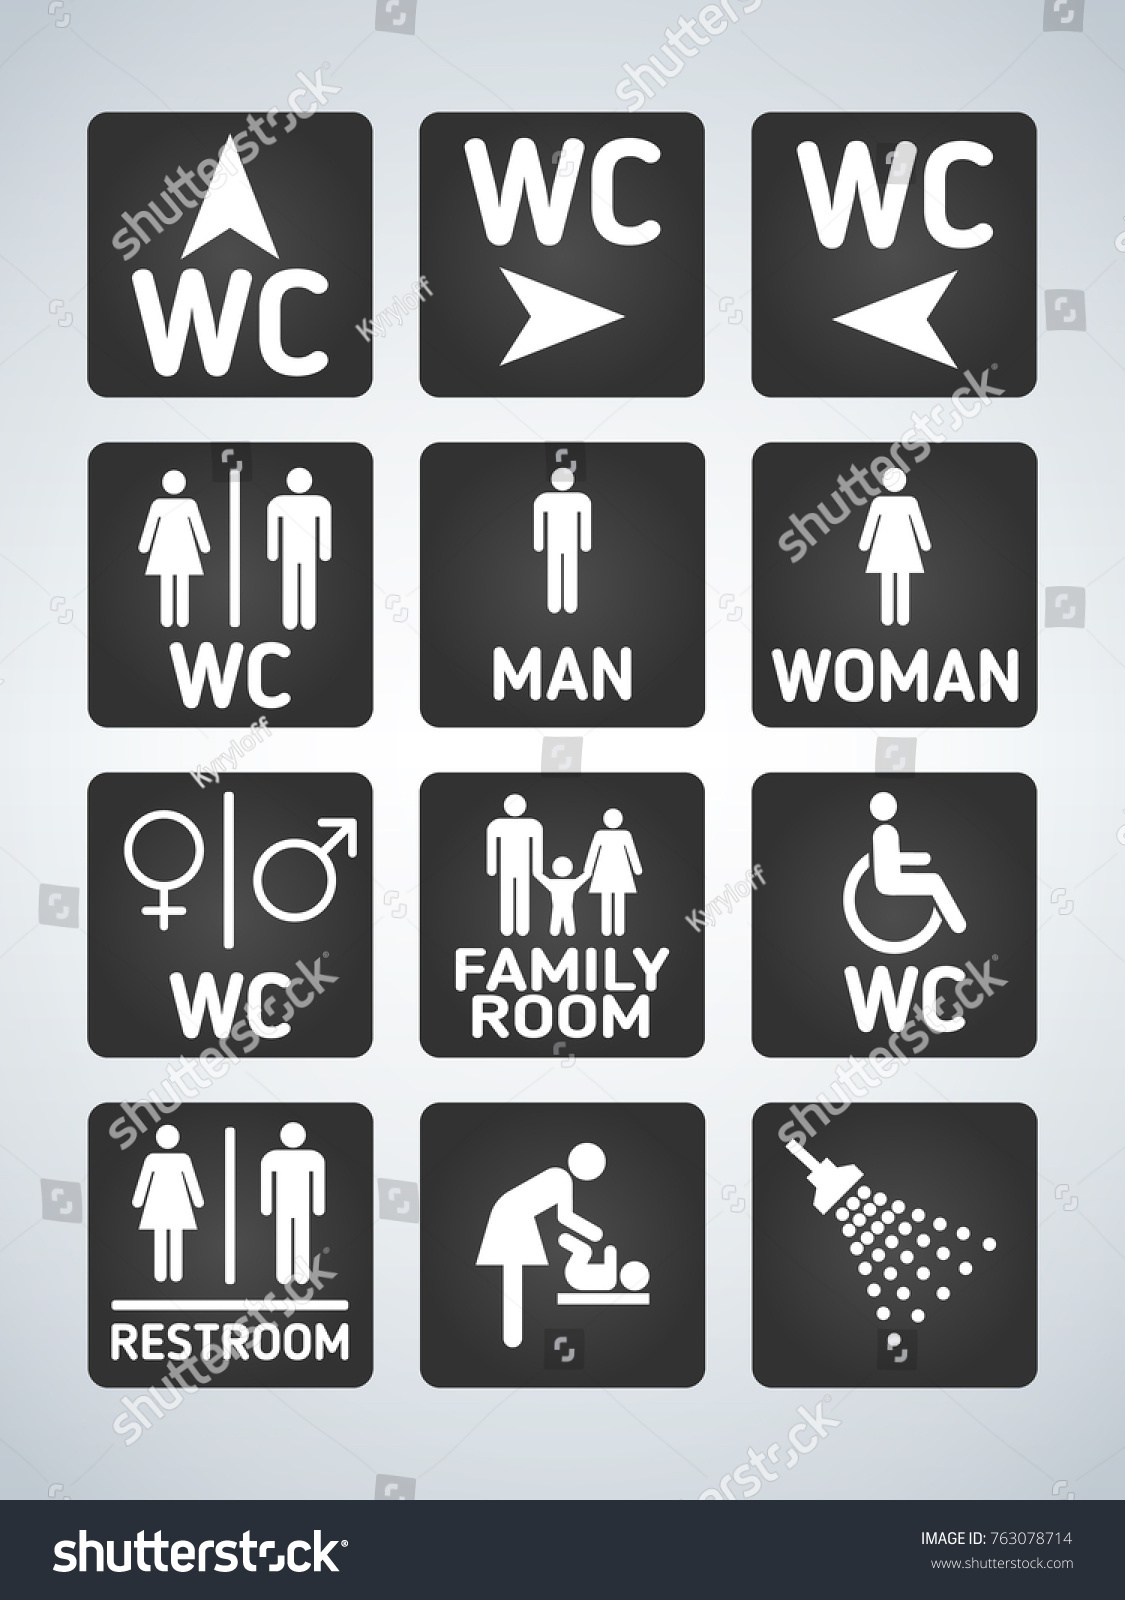 Toilet signs vector set stock images image 36323784 - Wc Toilet Door Plate Icons Set Stock Vector 763078714 Shutterstock Stock Vector Wc Toilet Door Plate Icons Set White On Black Men And Women Wc Sign For